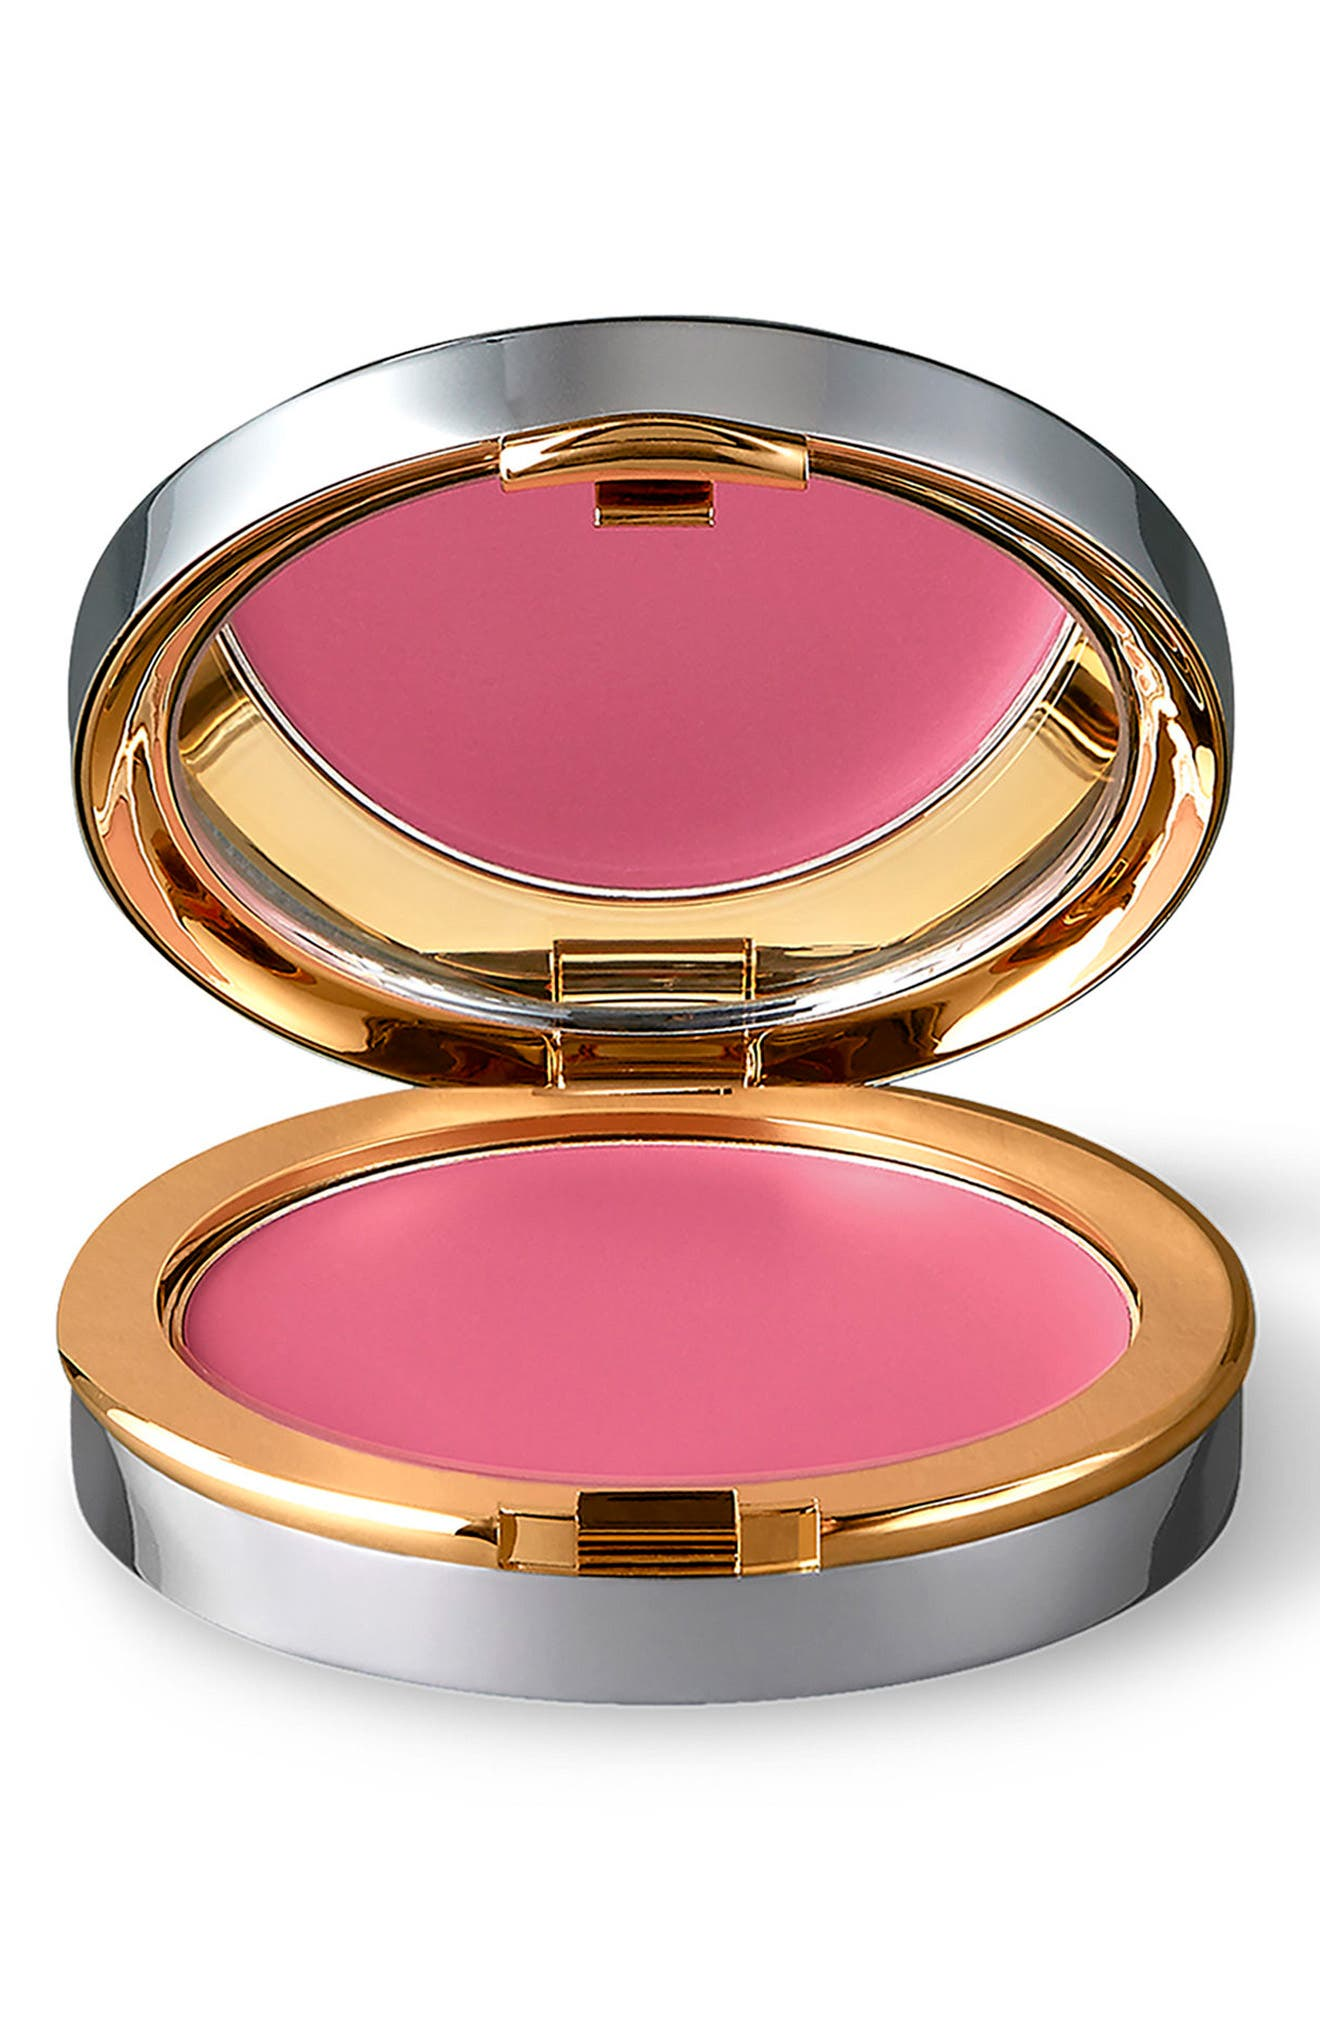 Cellular Radiance Cream Blush,                             Main thumbnail 1, color,                             PLUM GLOW